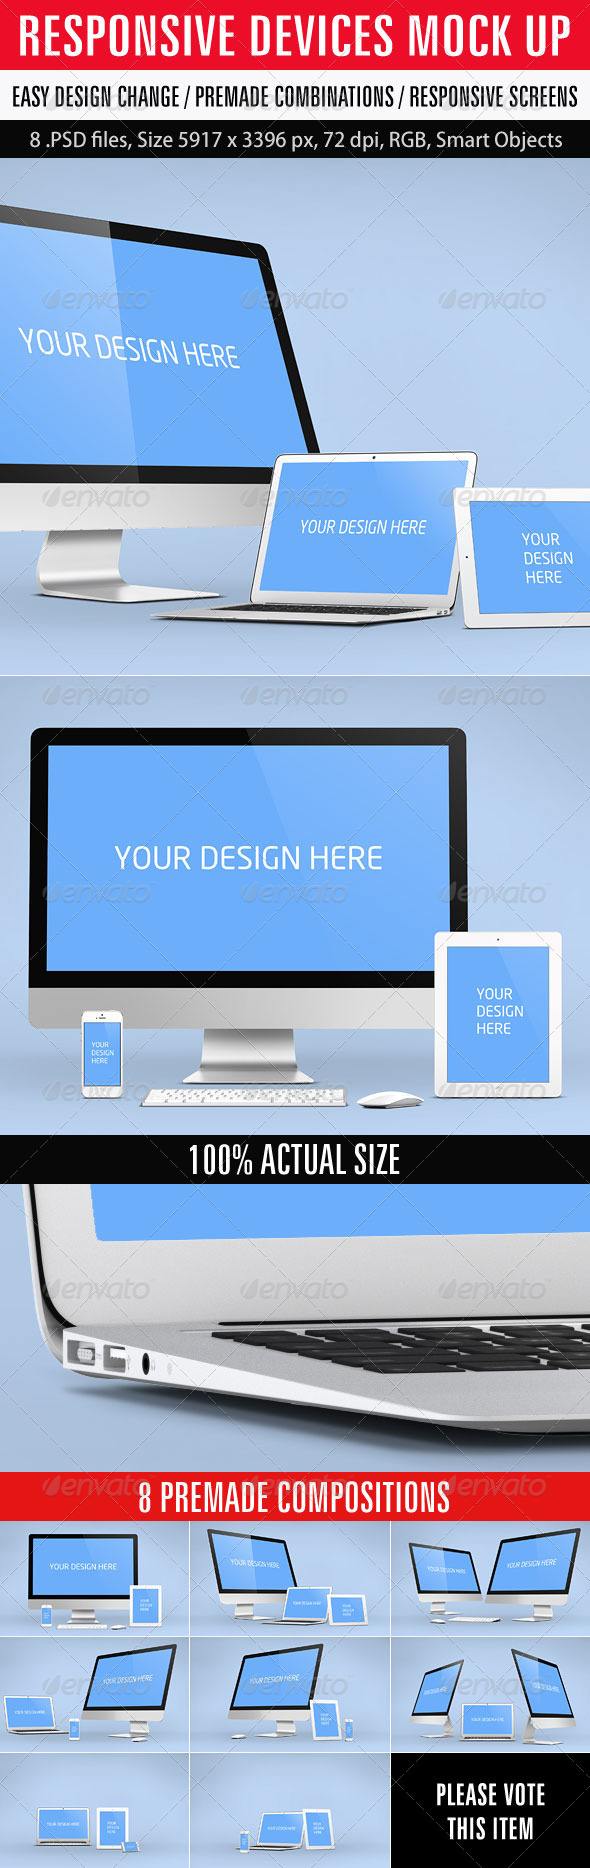 Responsive Devices Mock Up - Displays Product Mock-Ups